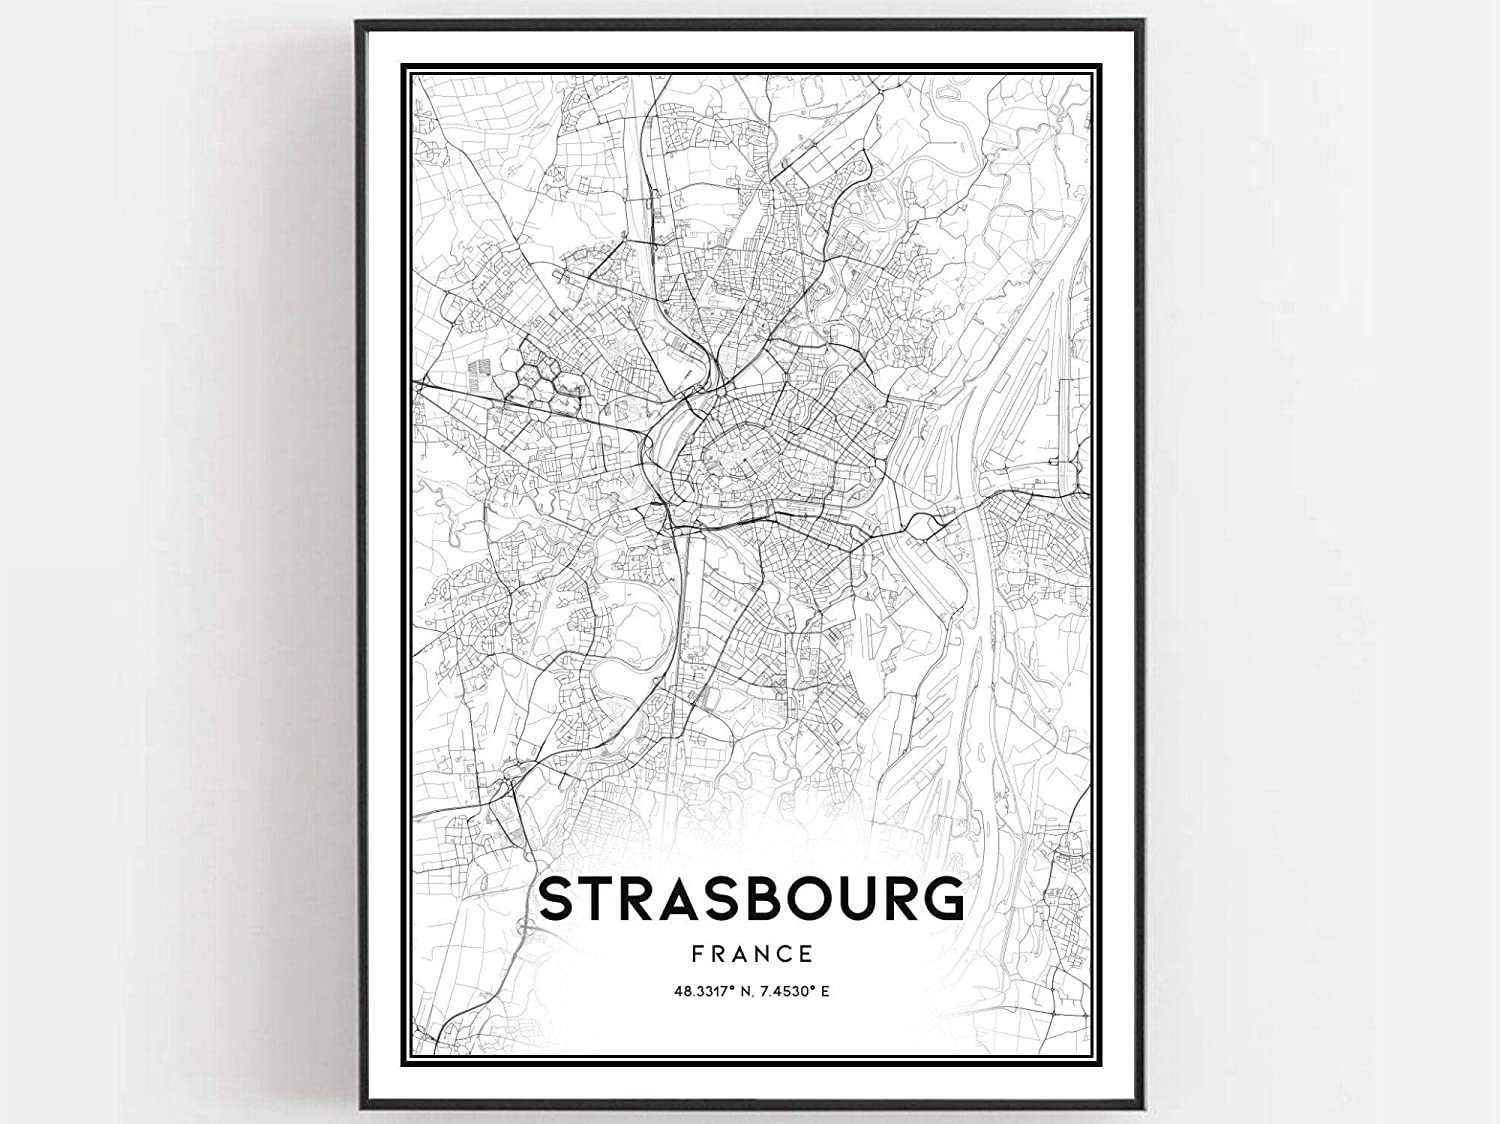 Strasbourg Map Print Strasbourg Map Poster Wall Art Strasbourg City Map Strasbourg Print Street Map Decor Road Map Gift Art Decor